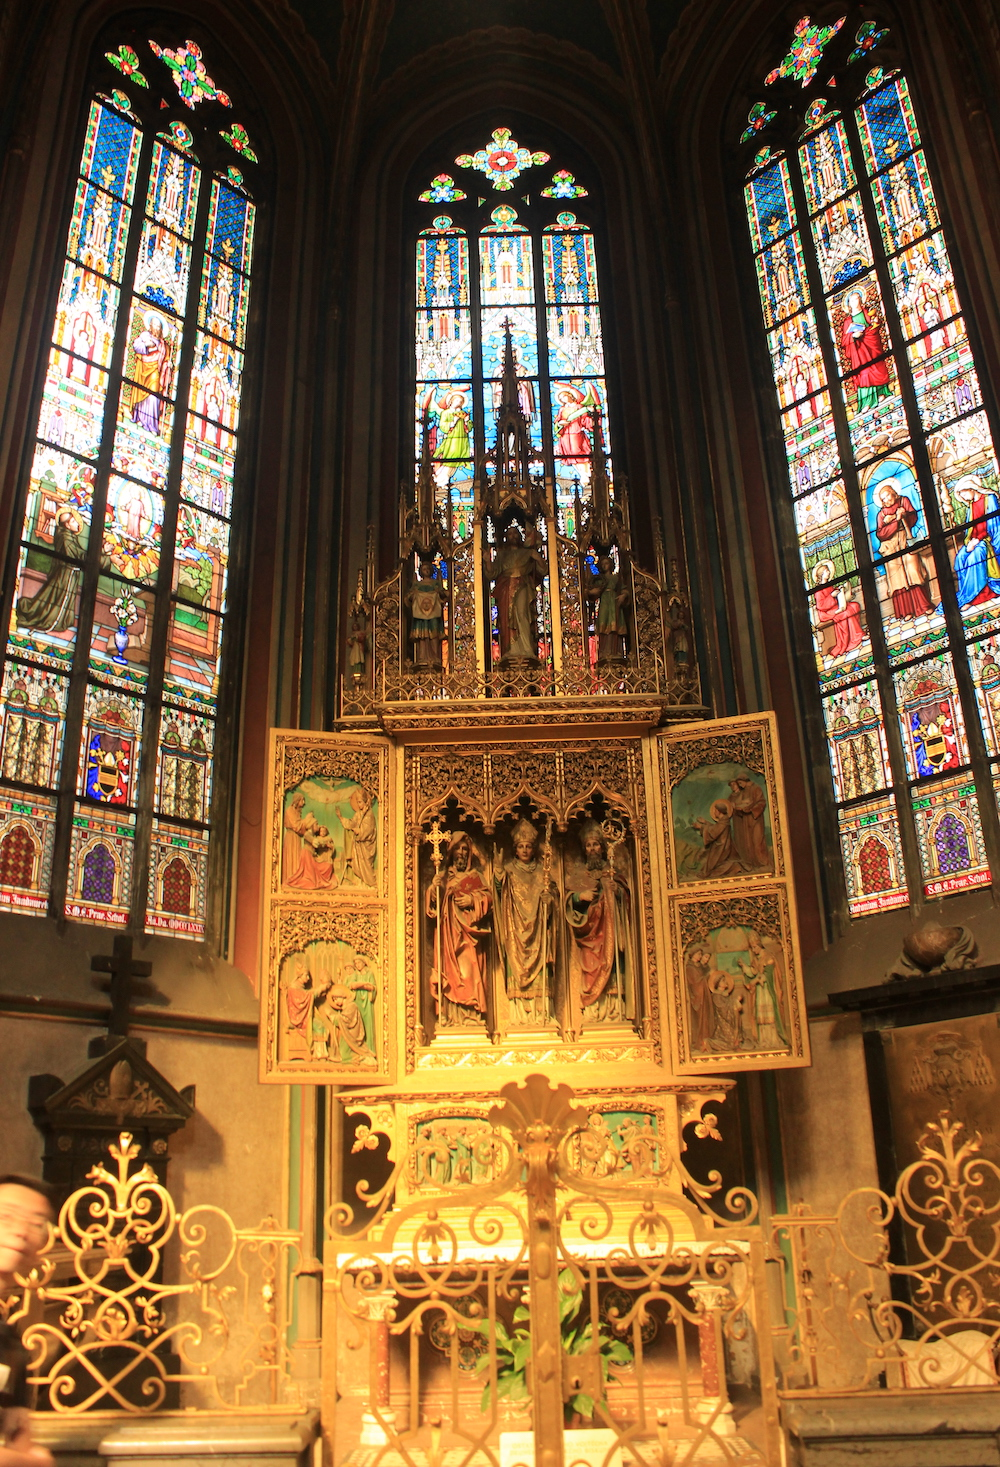 St. Wenceslas Chapel | Photo credit: Rose Spaziani